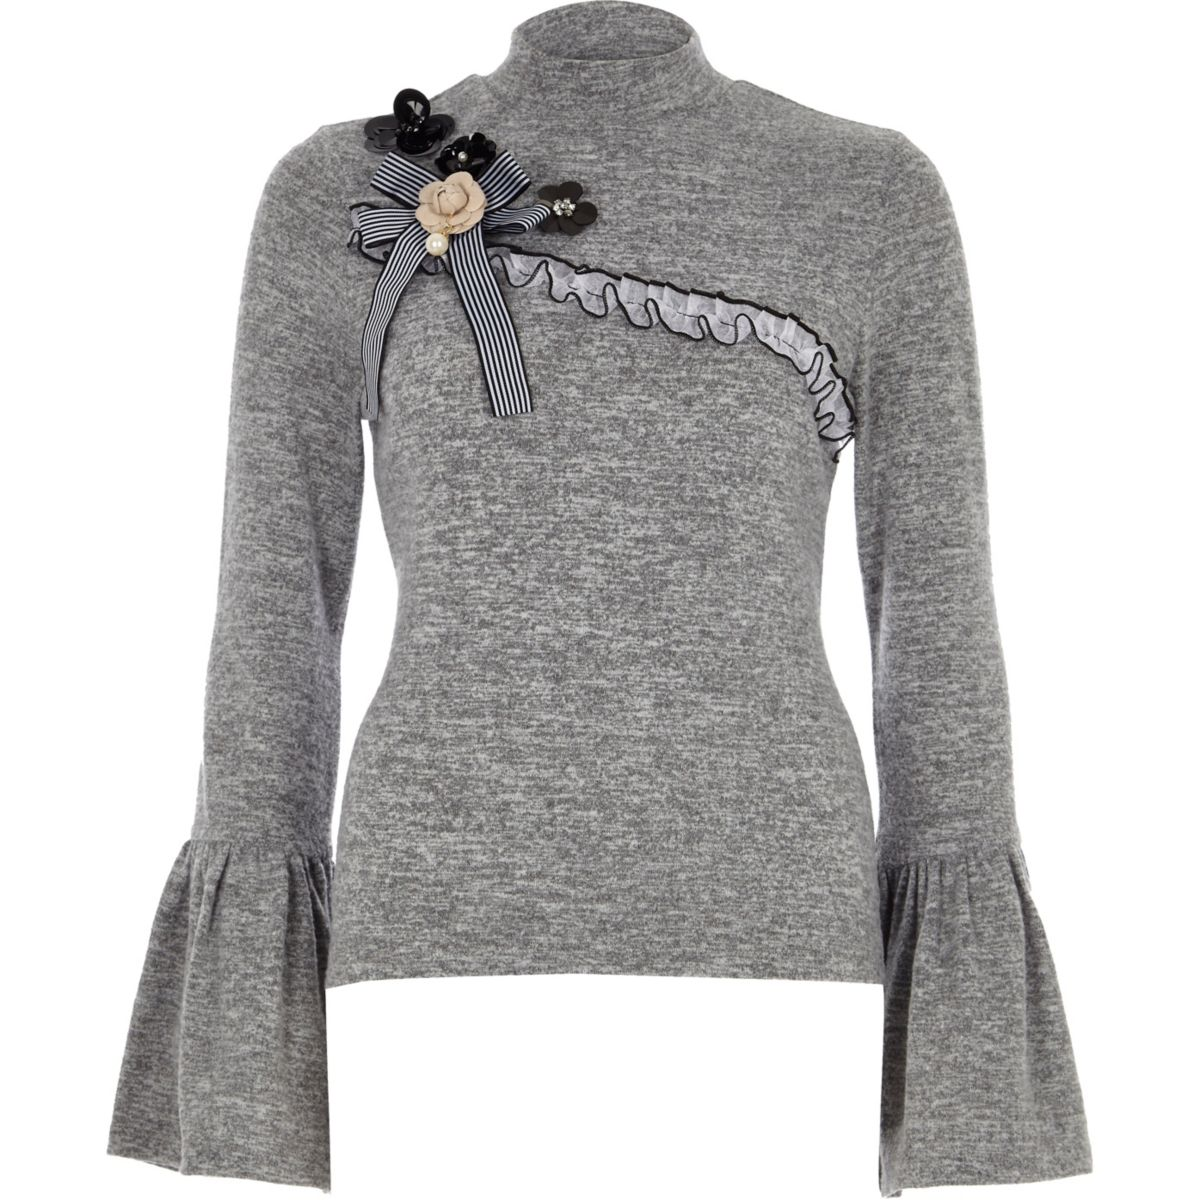 Grey high neck frill sleeve embellished top